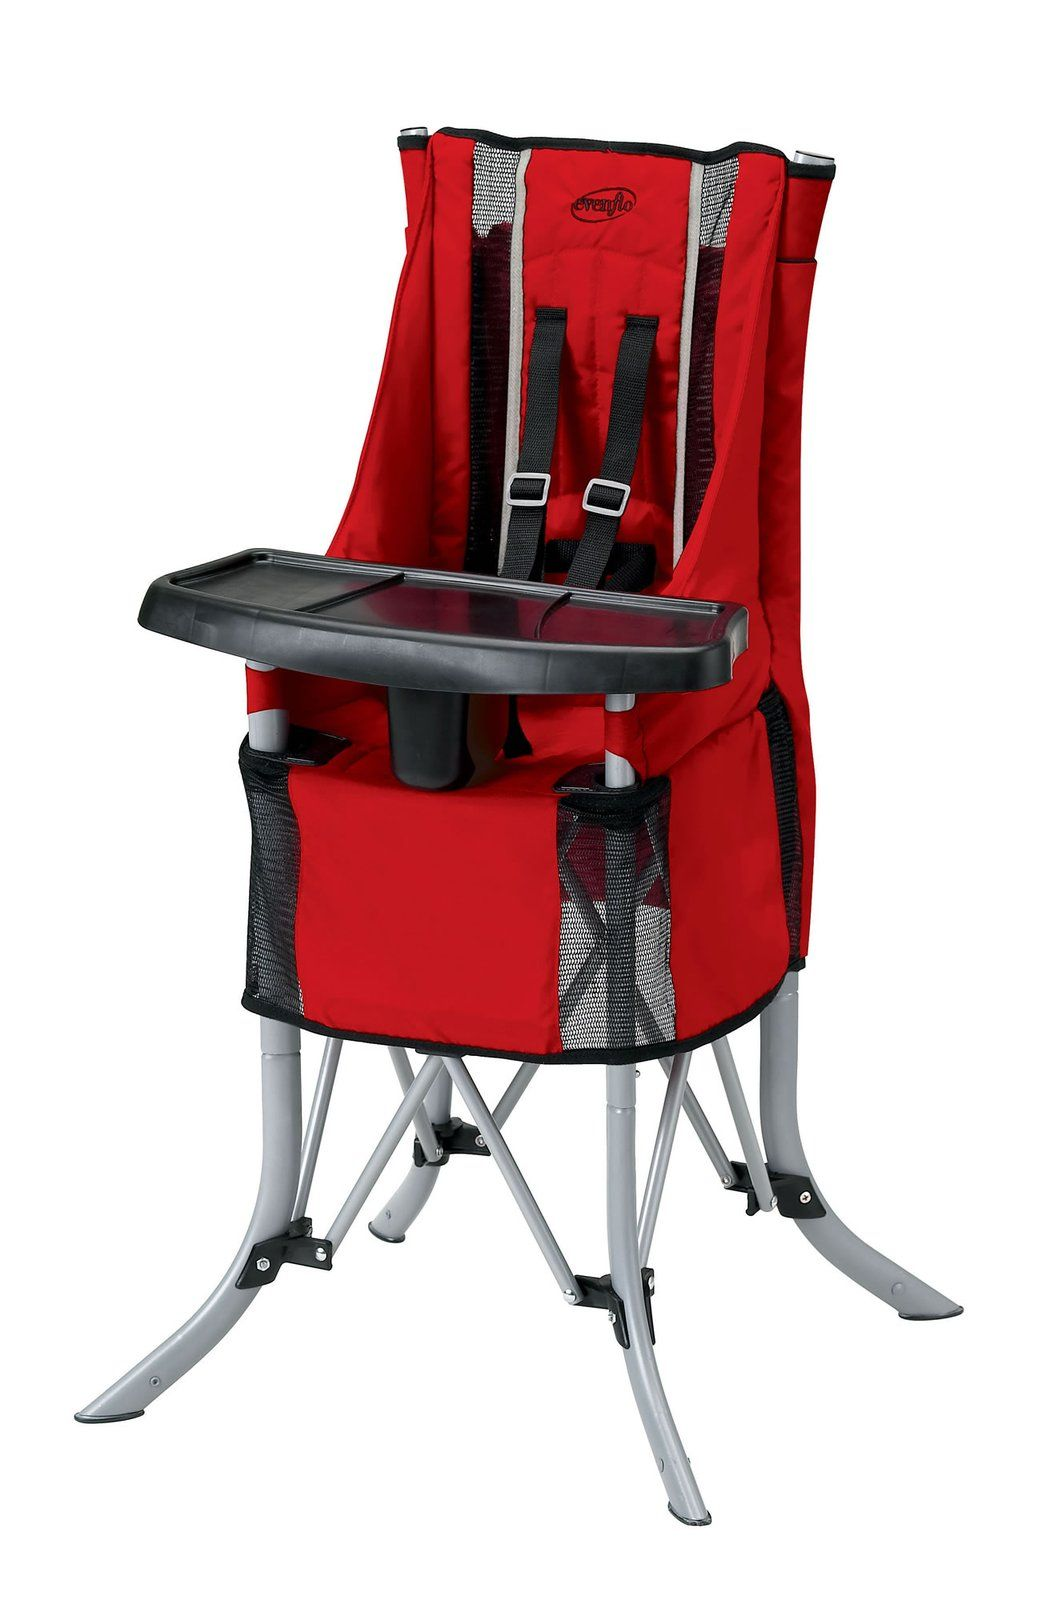 evenflo babygo travel high chair red best price. Black Bedroom Furniture Sets. Home Design Ideas